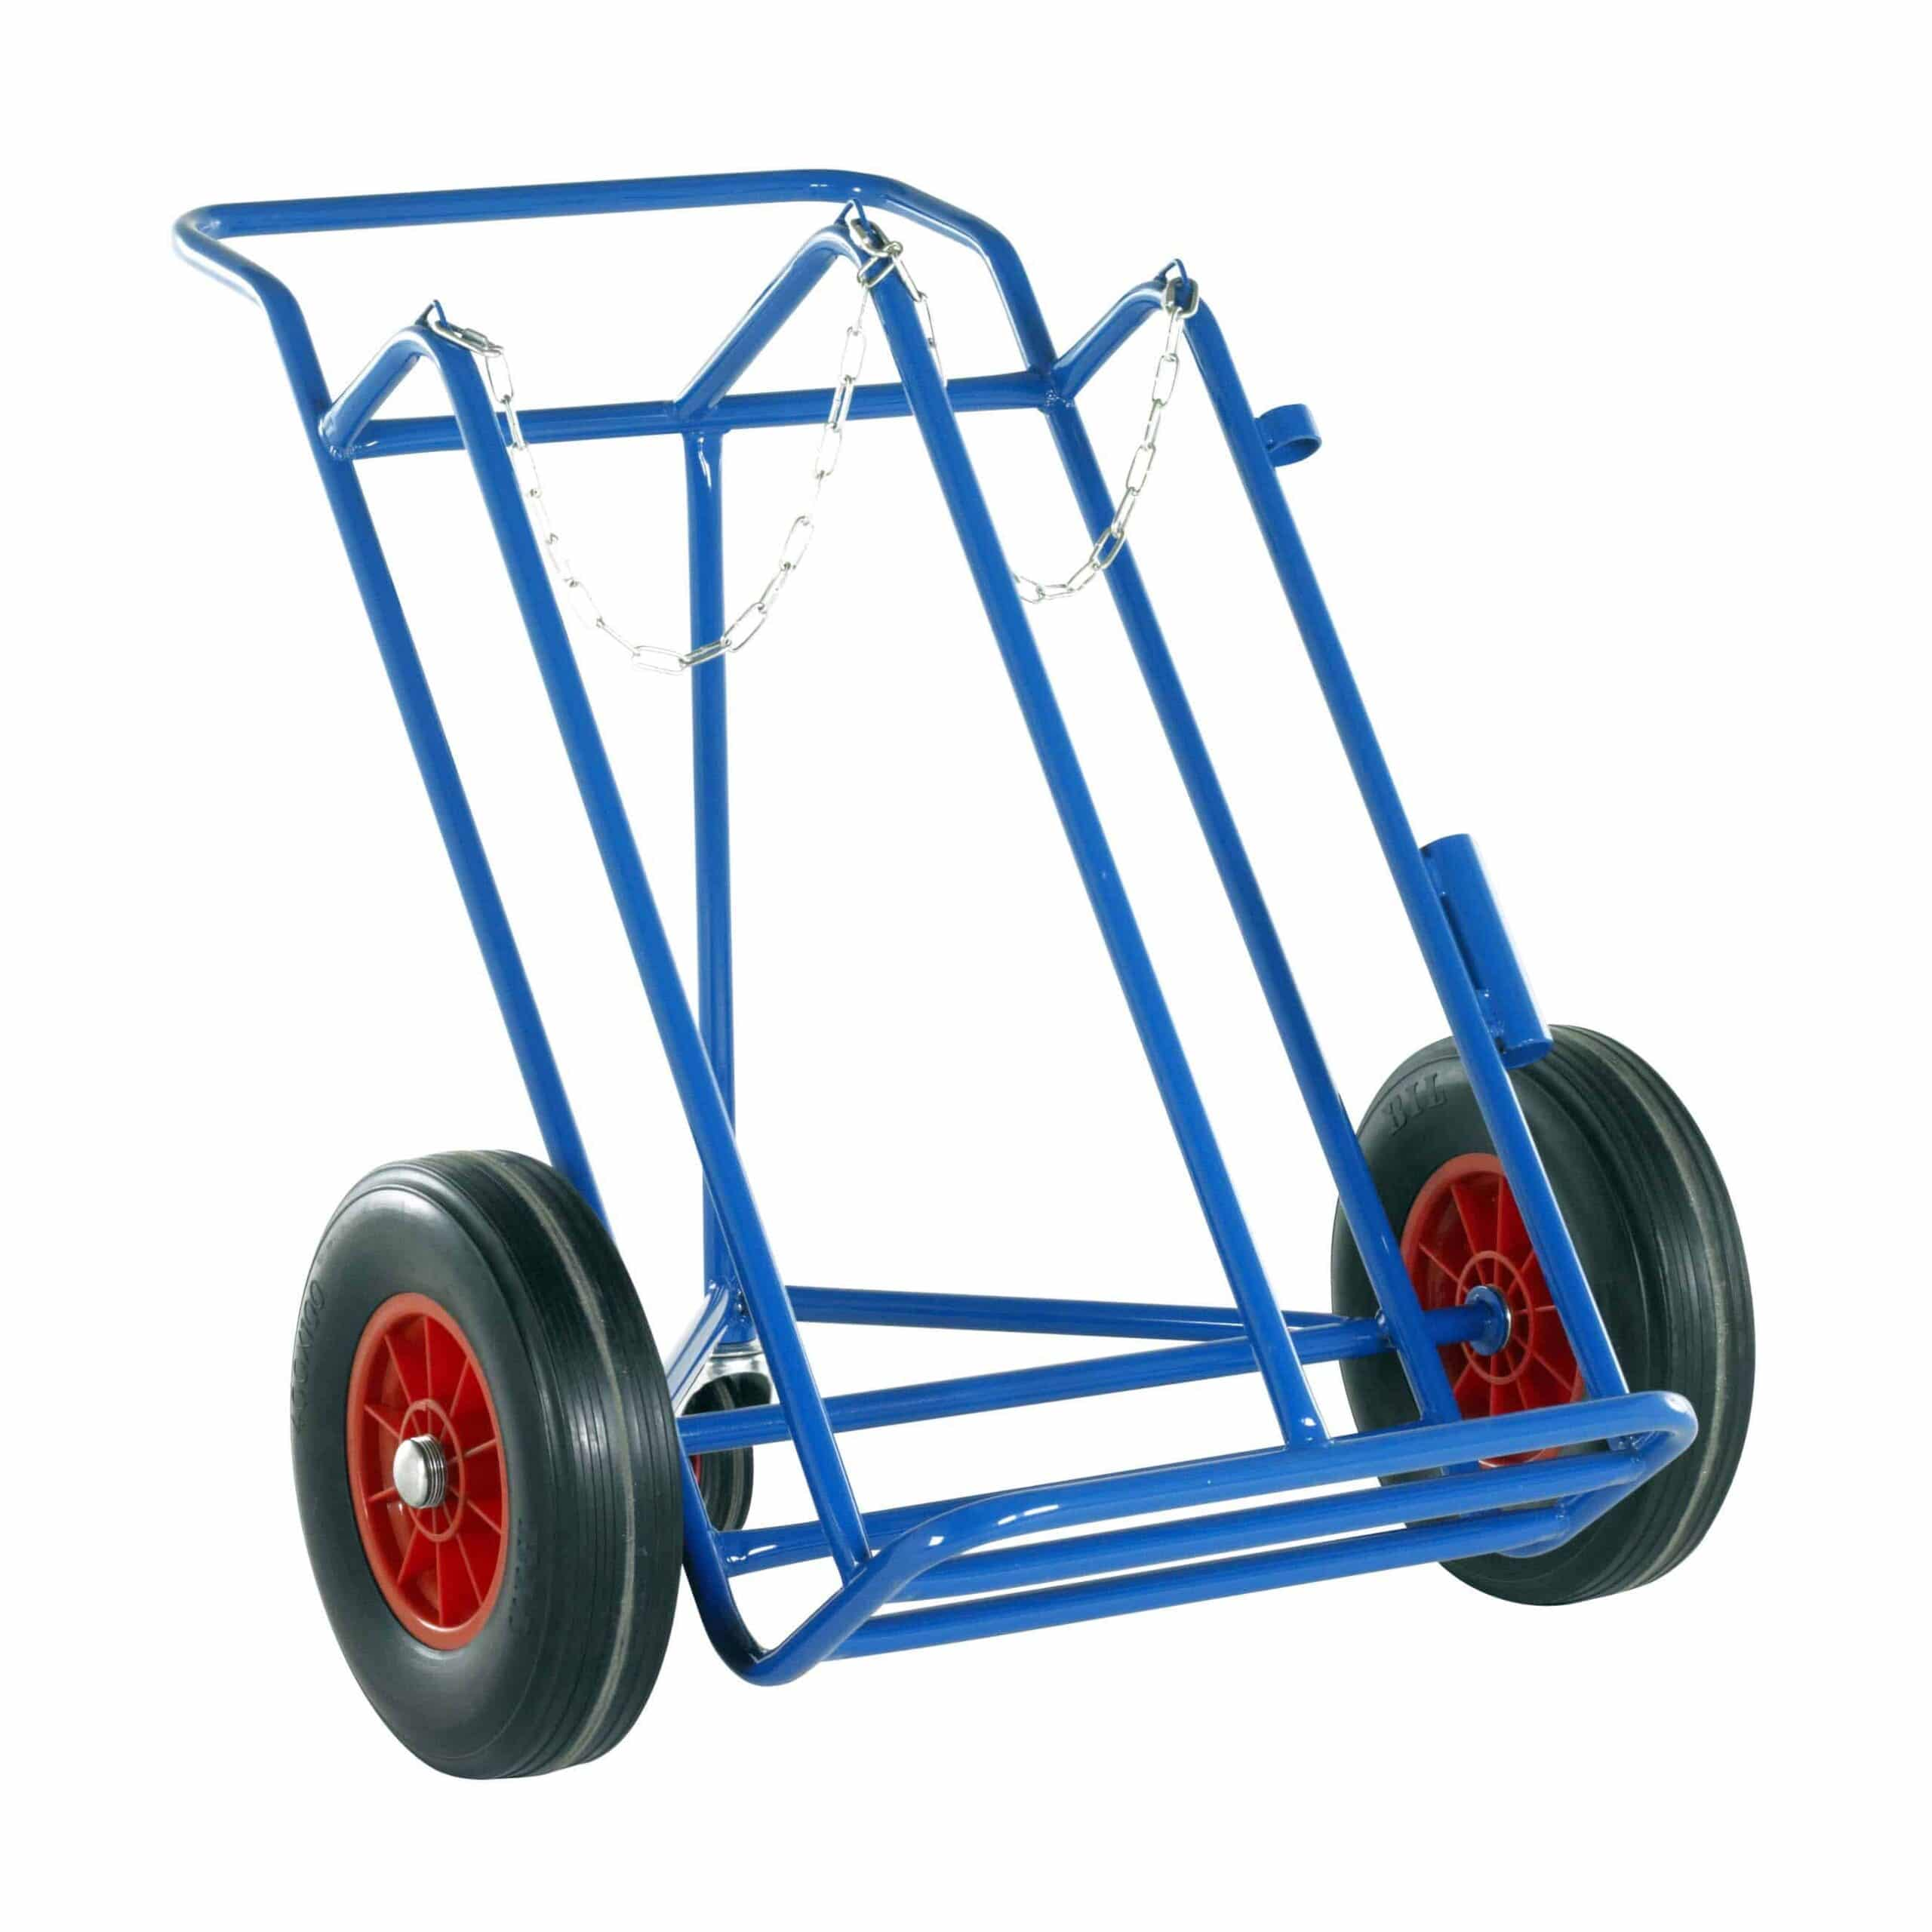 3 Wheel Welders Trolley